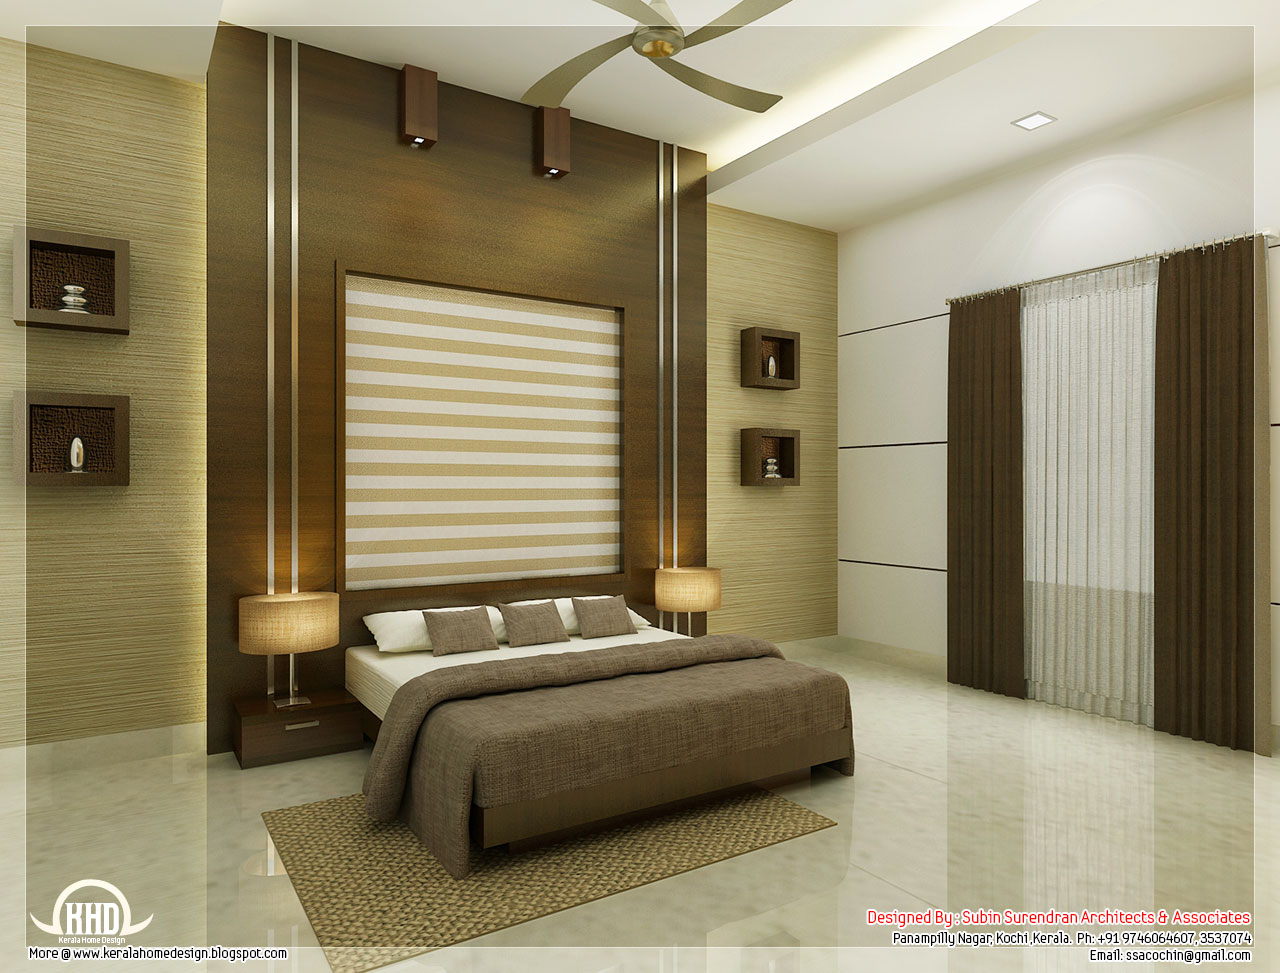 Beautiful bedroom interior designs kerala home design for House design photos interior design